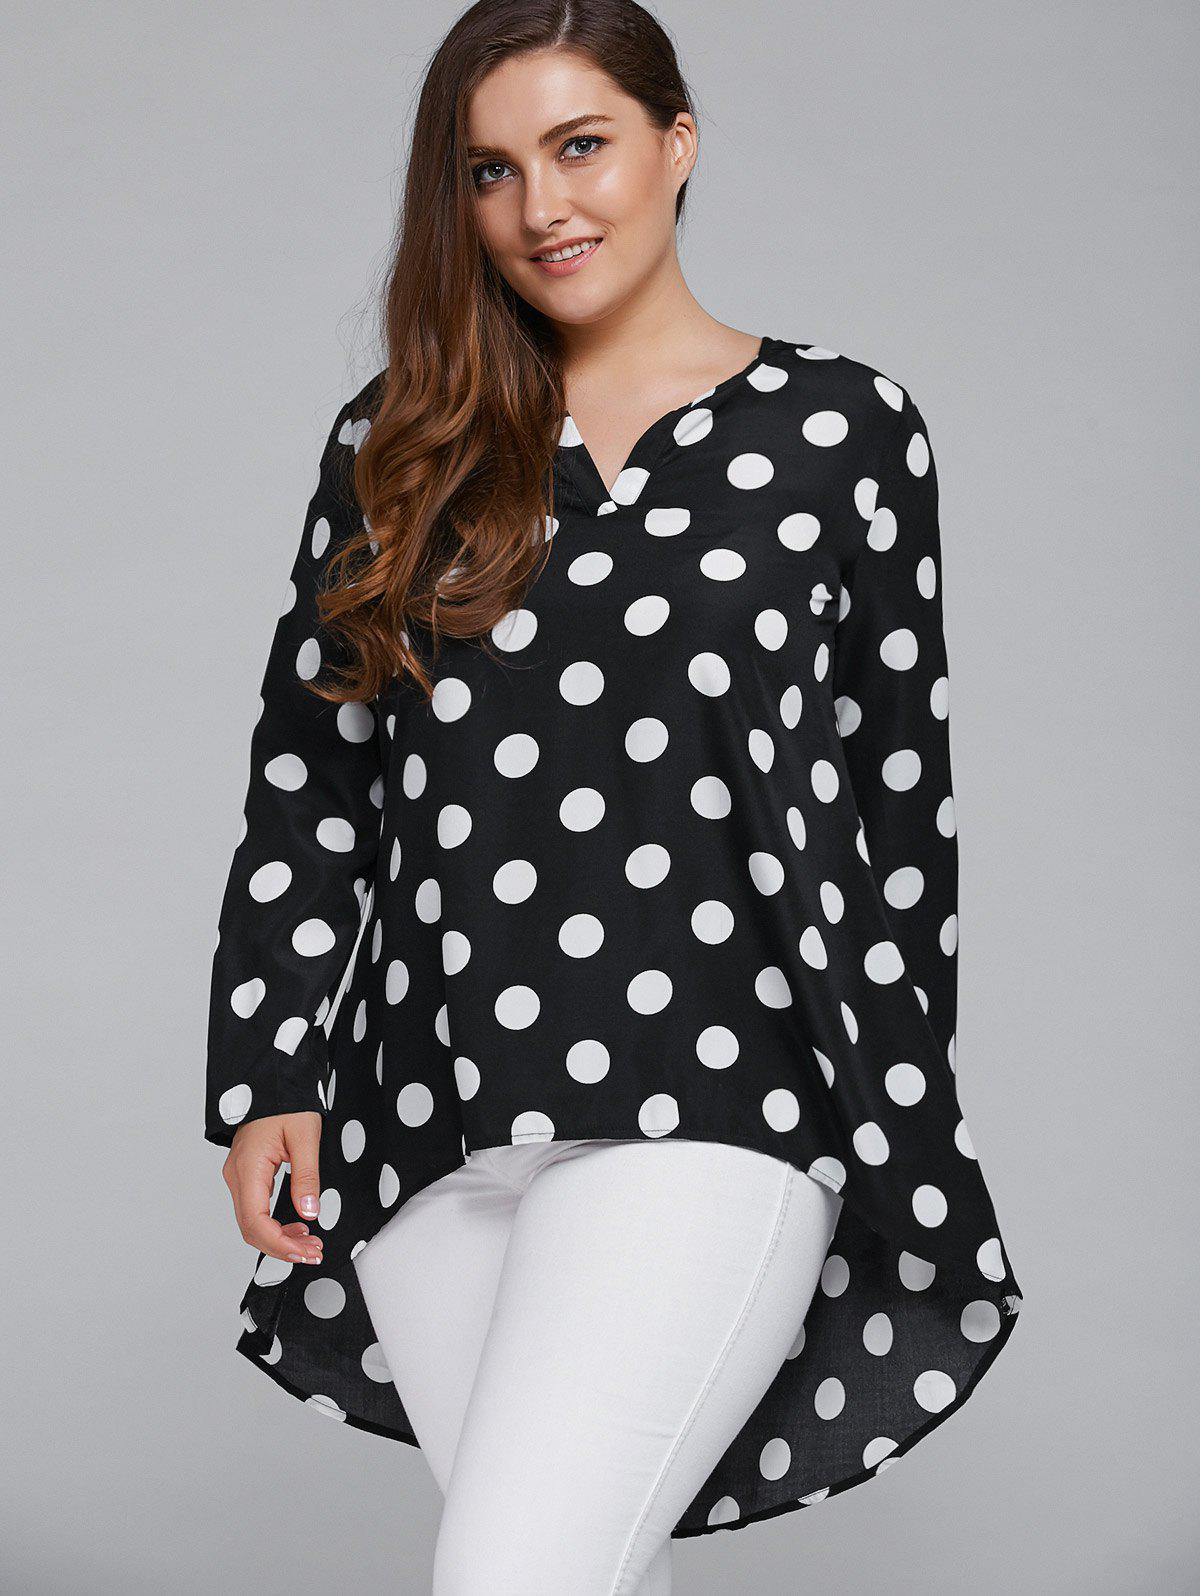 Plus Size Polka Dot High Low BlouseWOMEN<br><br>Size: 5XL; Color: WHITE AND BLACK; Material: Polyester; Shirt Length: Long; Sleeve Length: Full; Collar: Round Neck; Style: Casual; Season: Fall,Spring,Summer; Pattern Type: Polka Dot; Weight: 0.3700kg; Package Contents: 1 x Blouse;